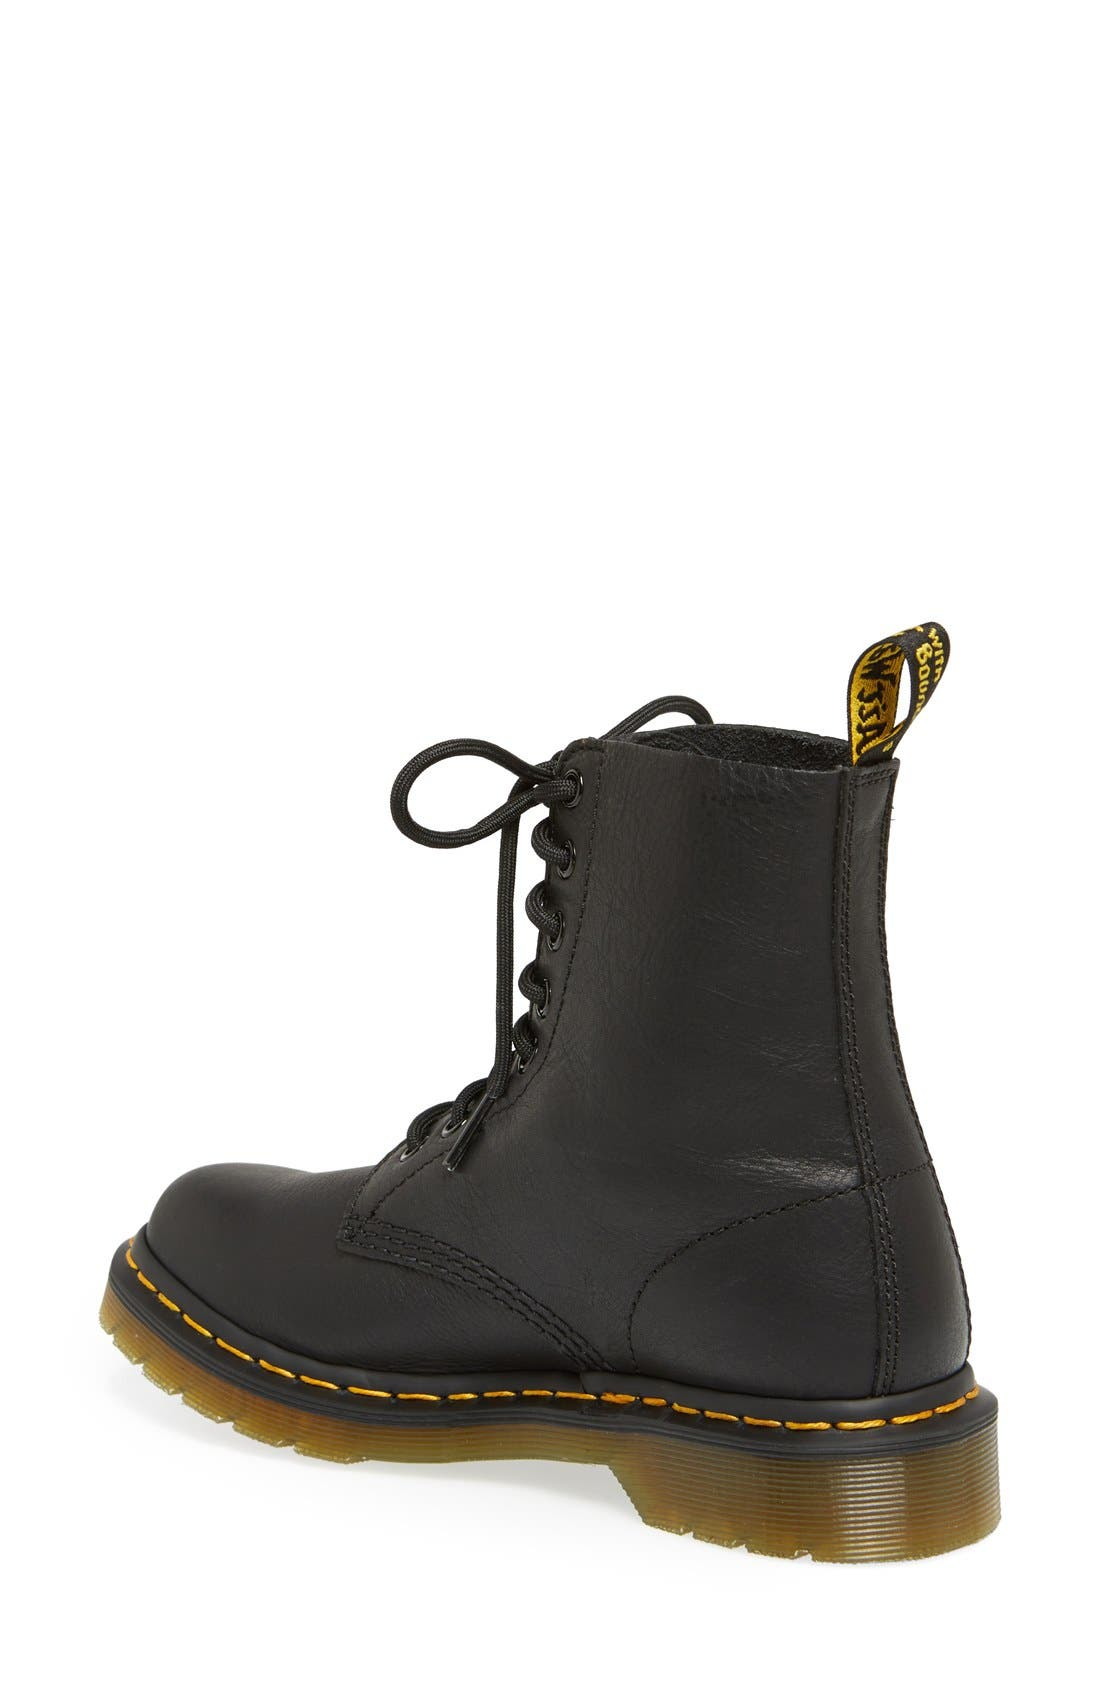 DR. MARTENS, 'Pascal' Boot, Alternate thumbnail 4, color, BLACK VIRGINIA